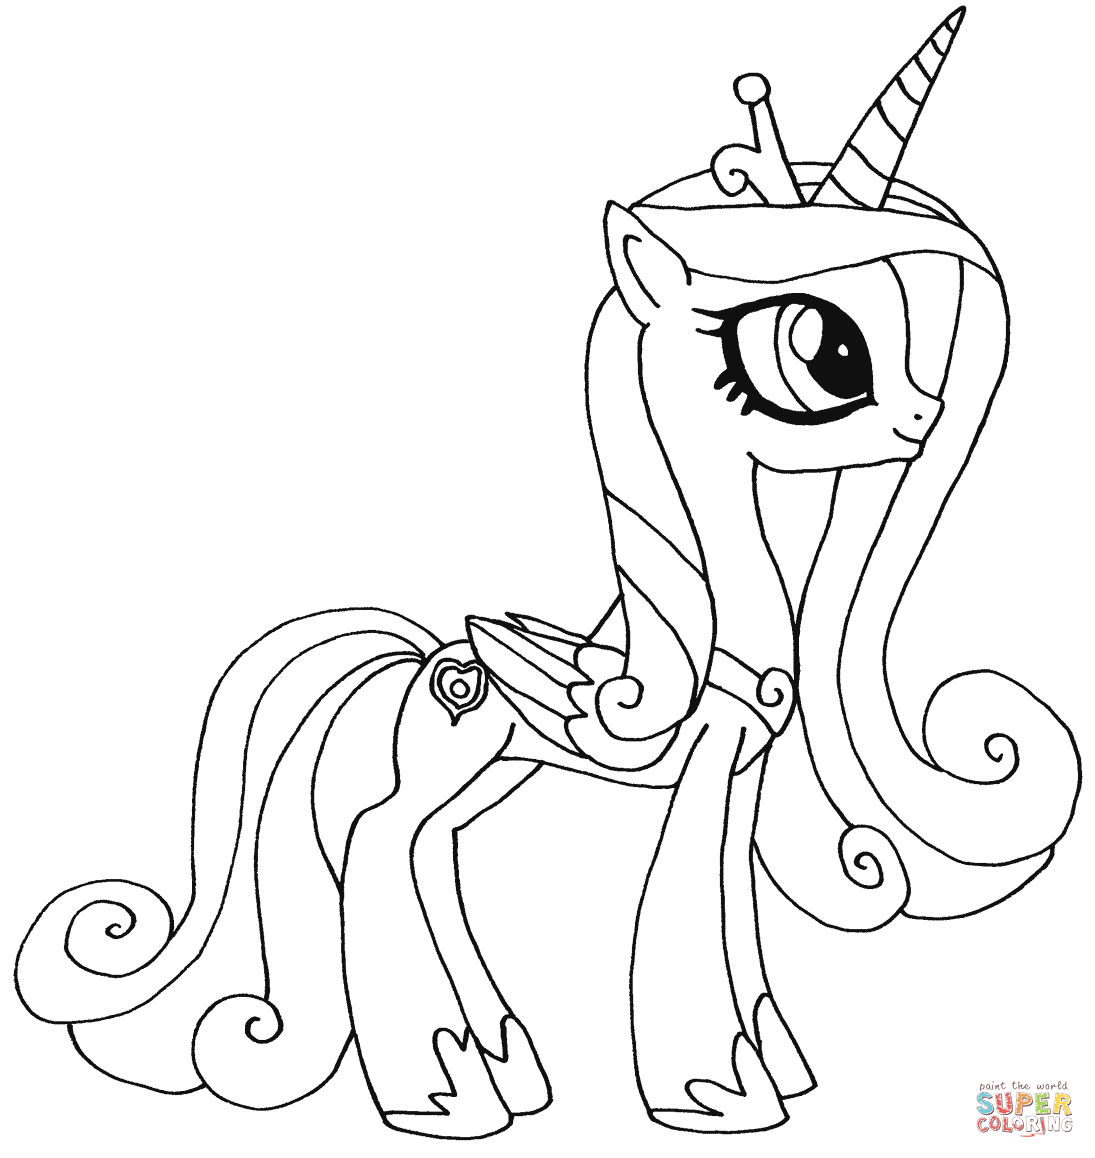 Princess Candance Coloring Page